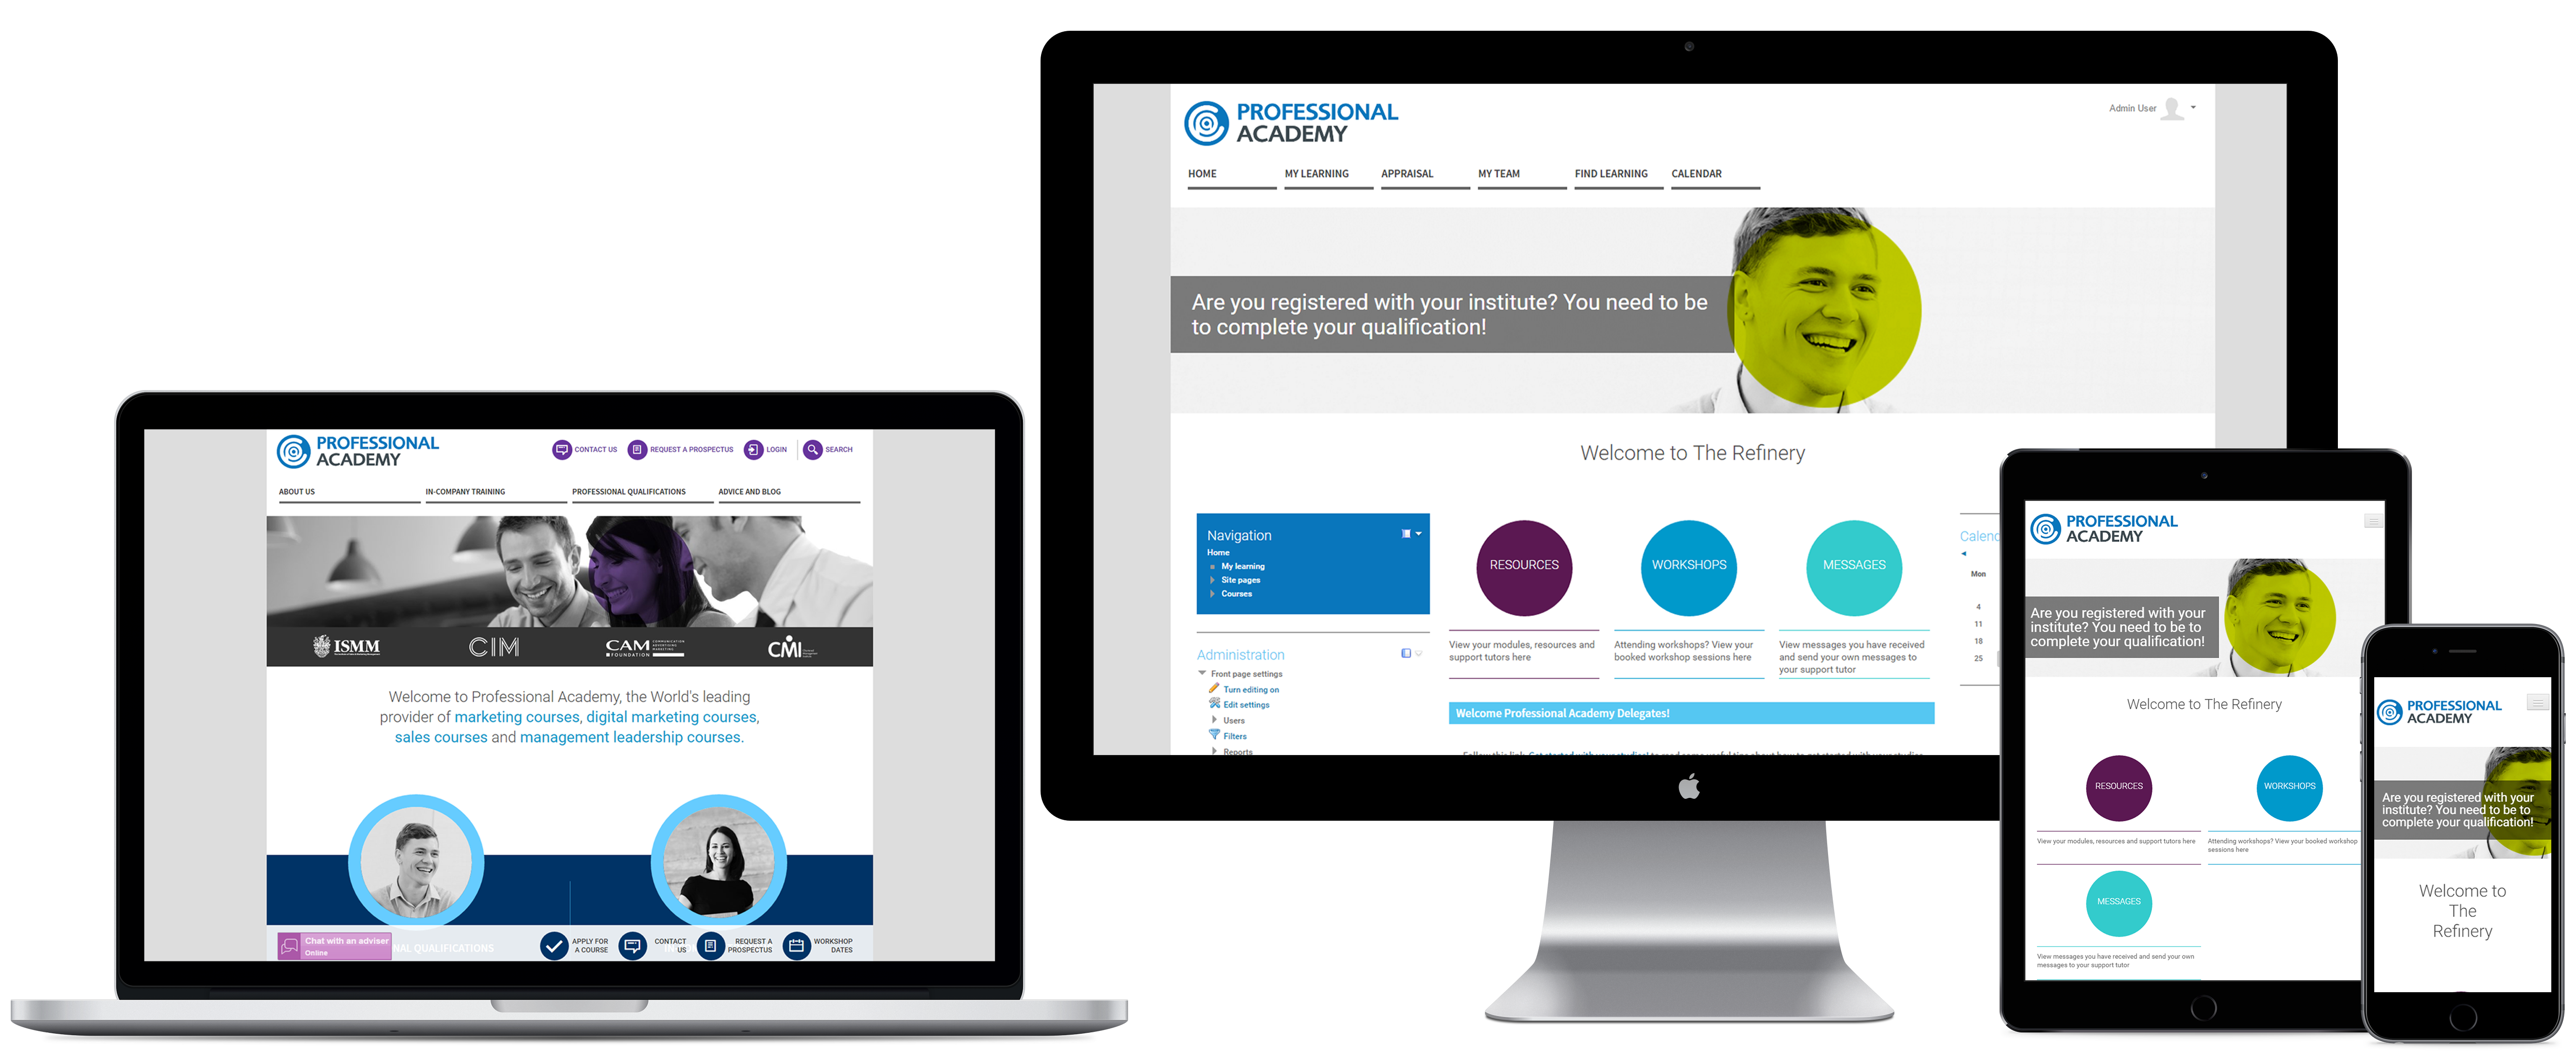 Professional Academy - Totara Learn Site - LMS Case Study